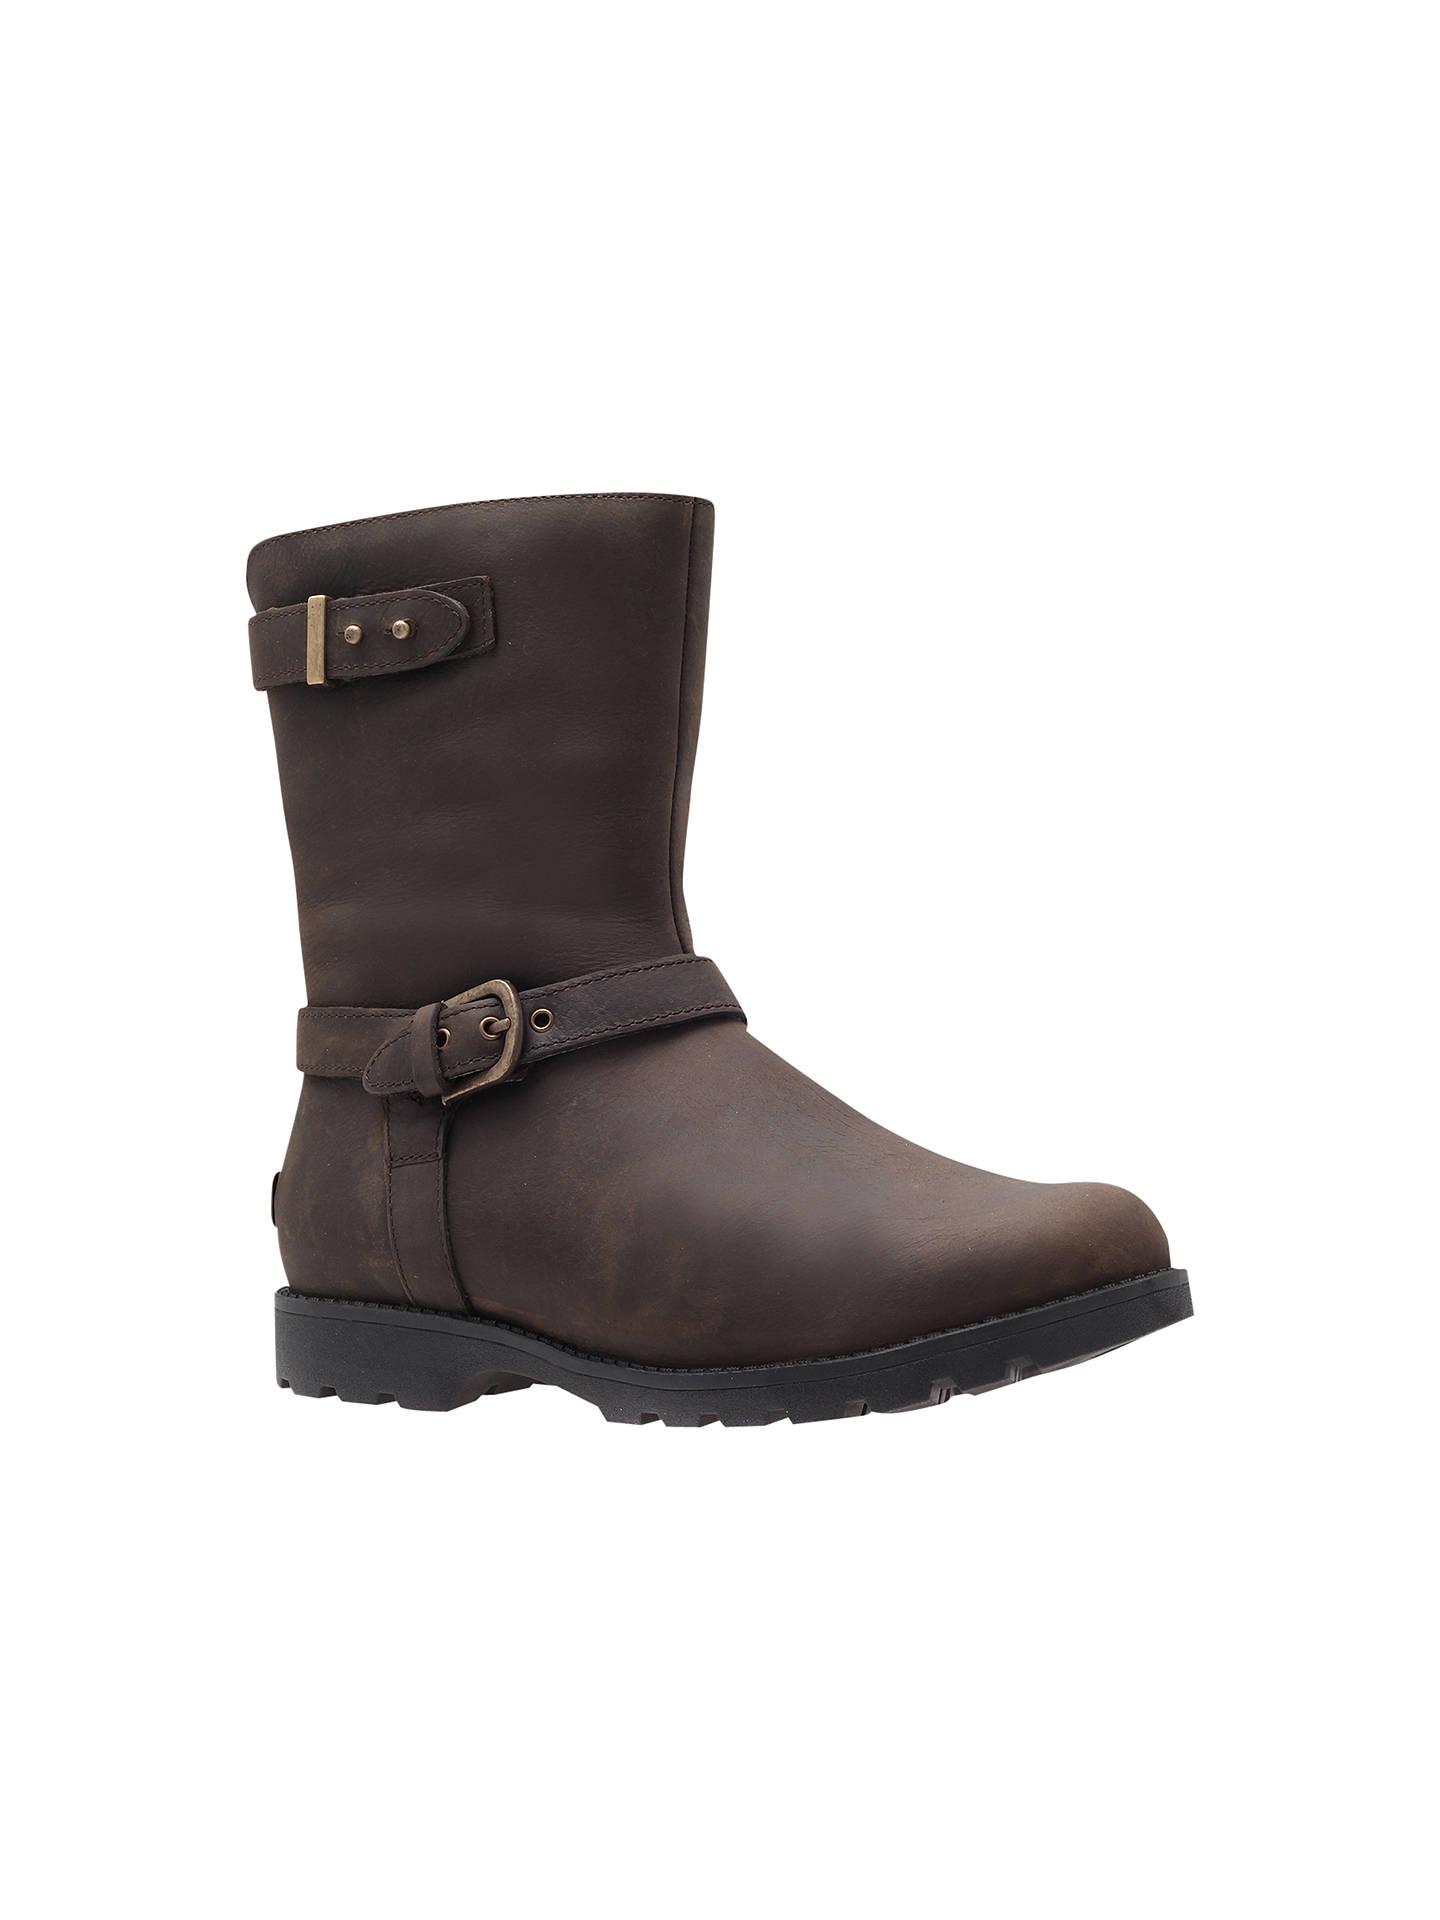 a98748c802d UGG Grandle Ankle Boots, Brown at John Lewis & Partners